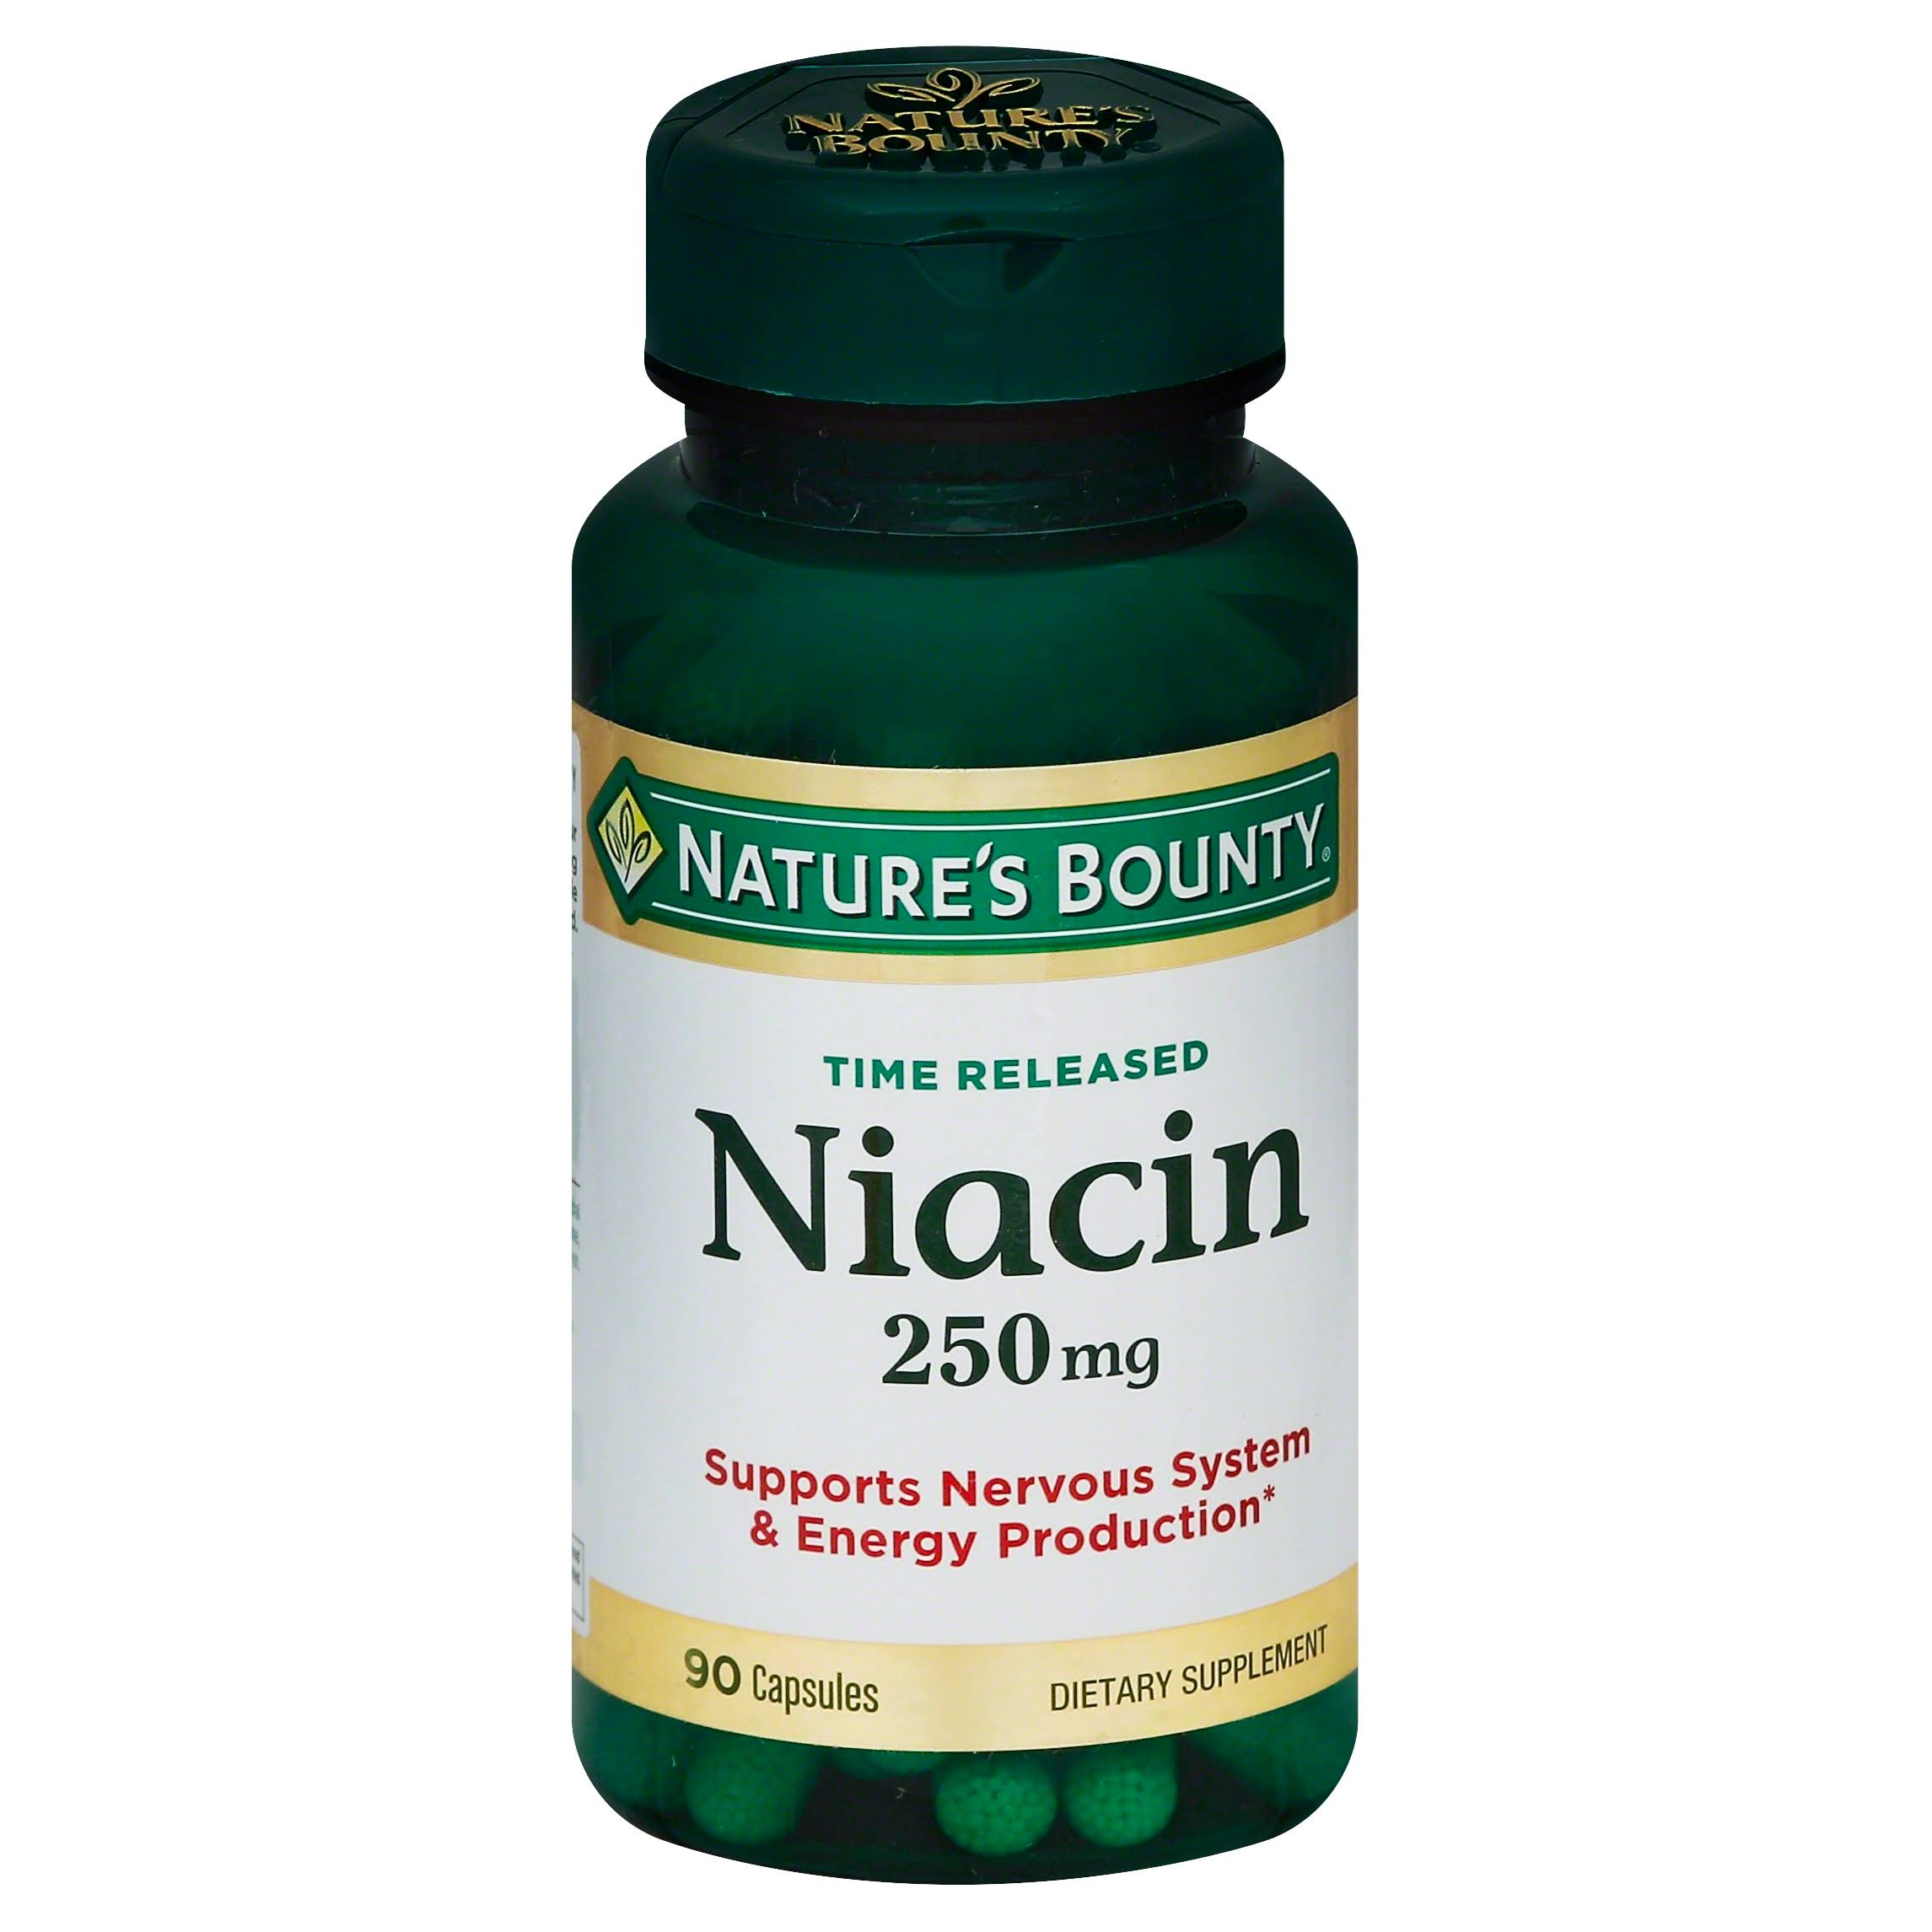 Nature's Bounty Time Released Niacin Dietary Supplement - 90 Capsules